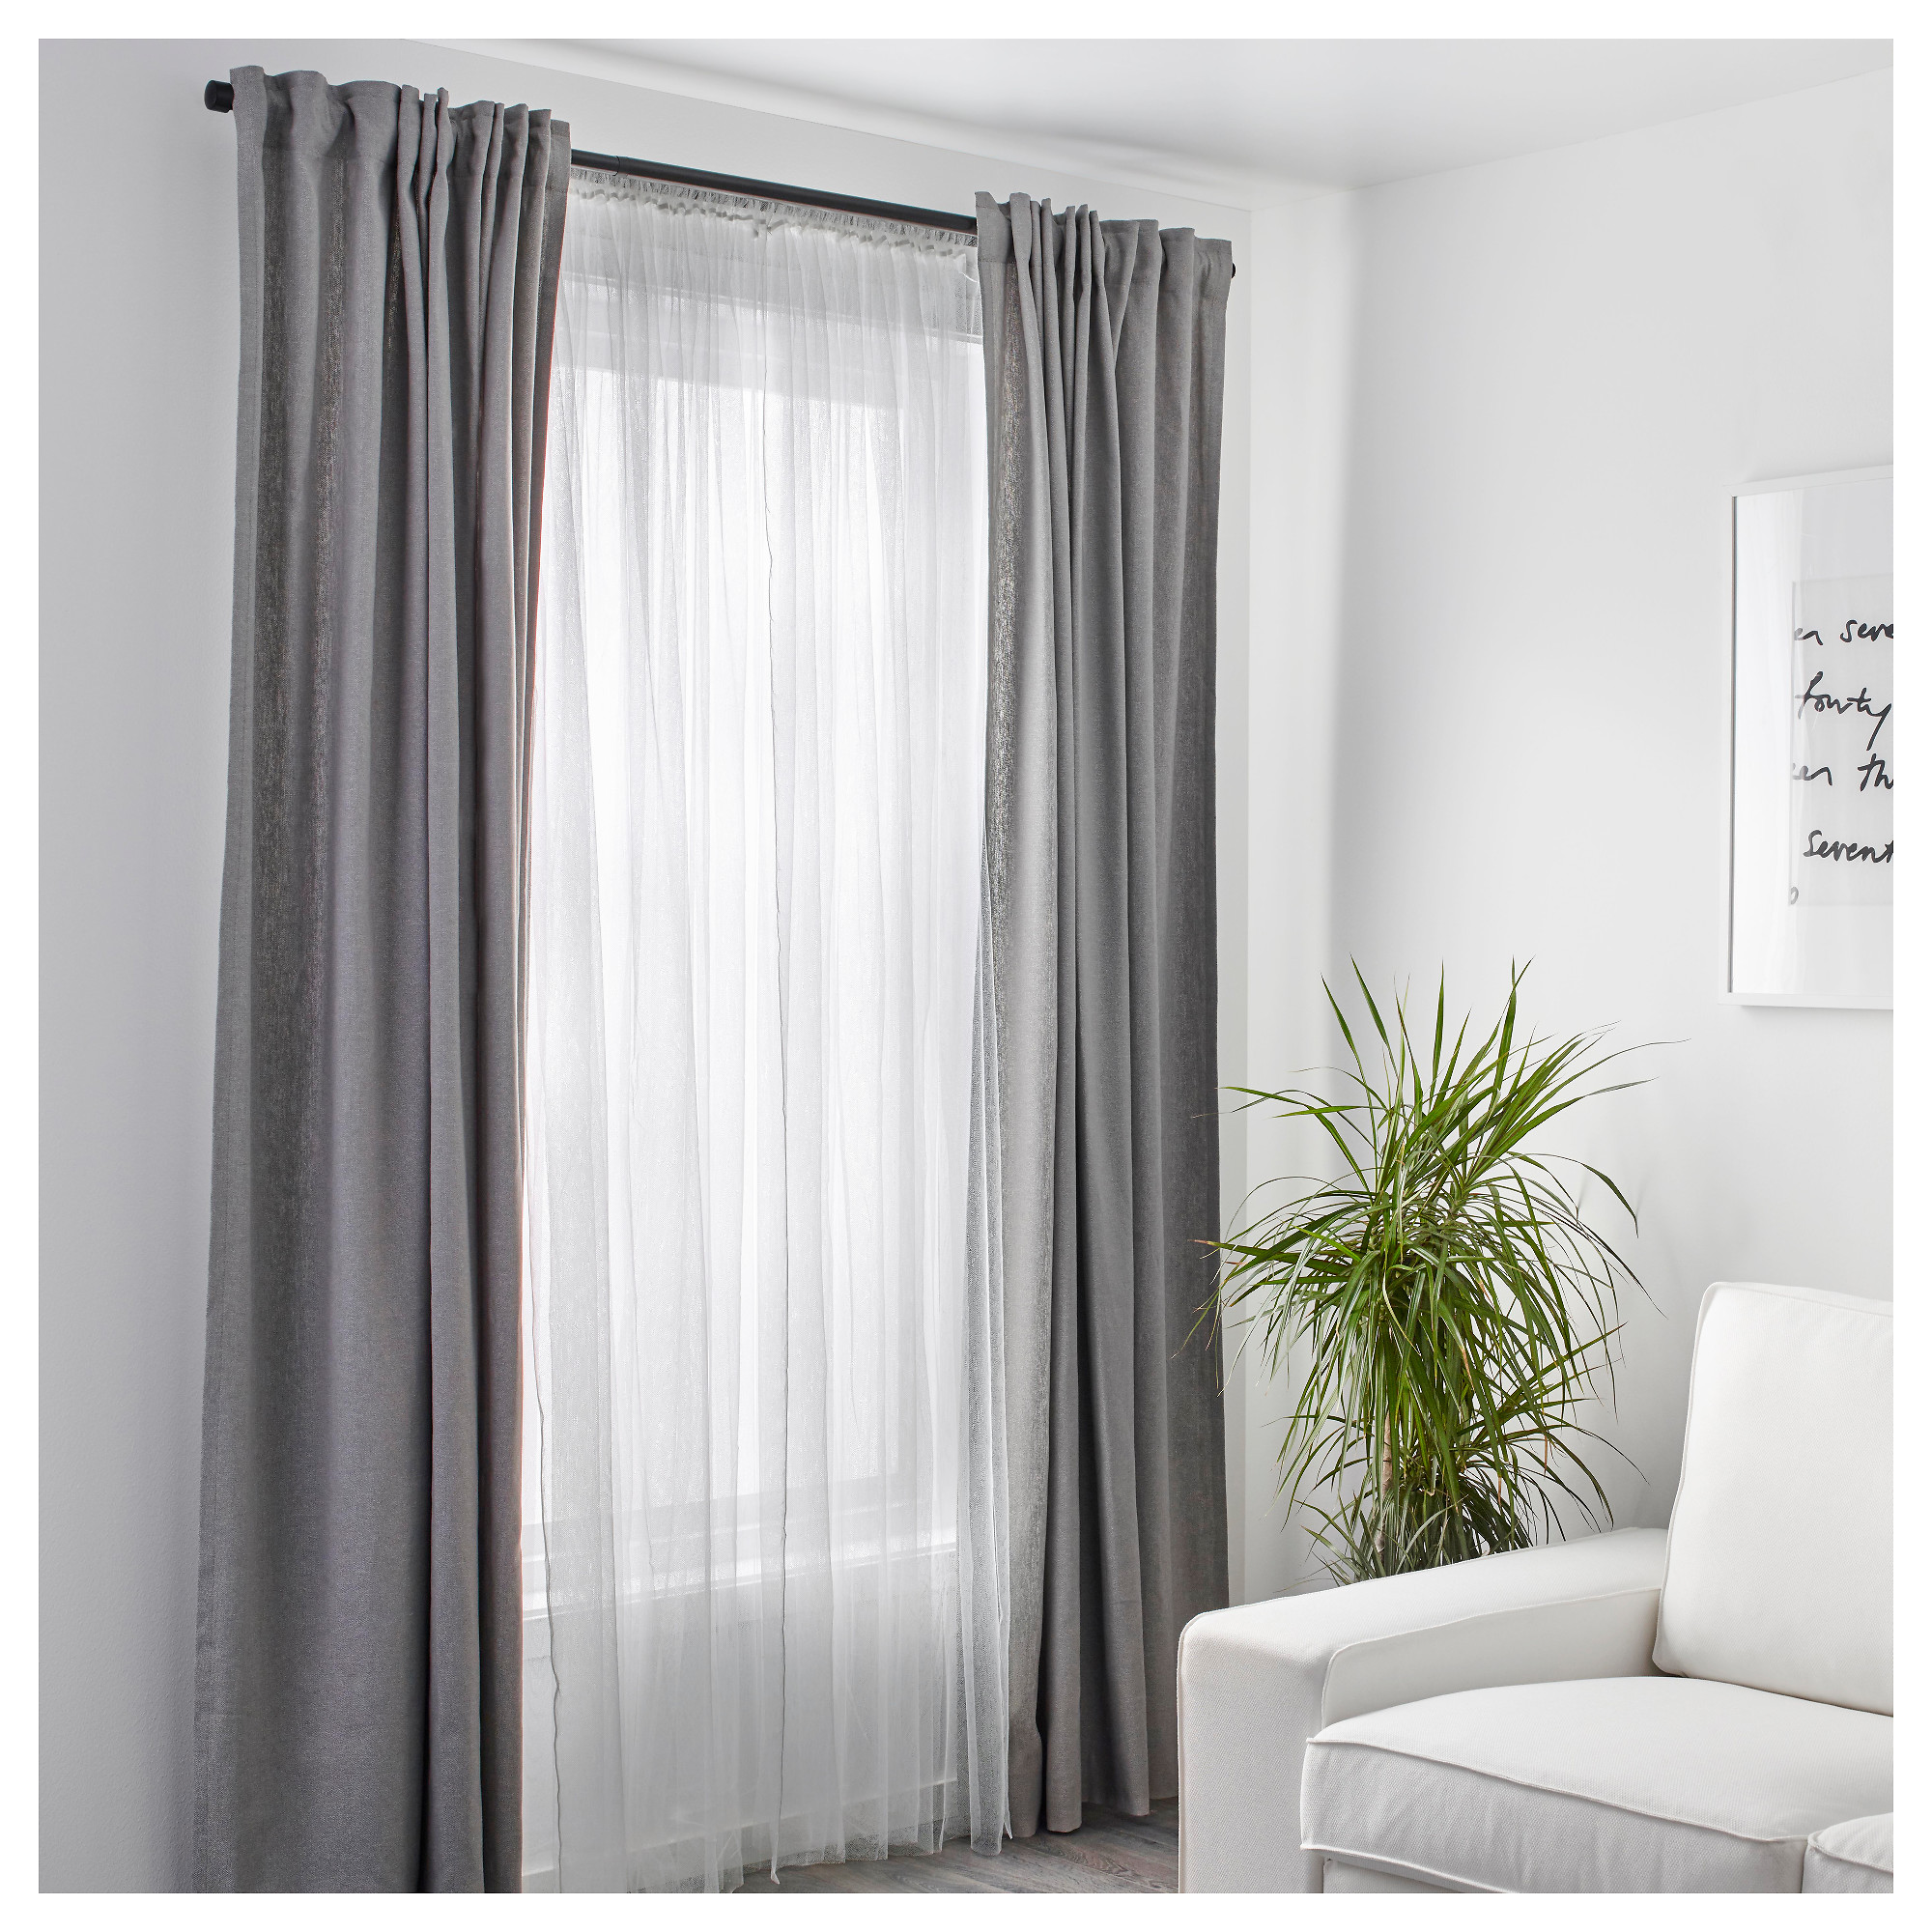 Home Decor ikea lill net curtains, 1 pair can be easily cut to the desired uekdkak